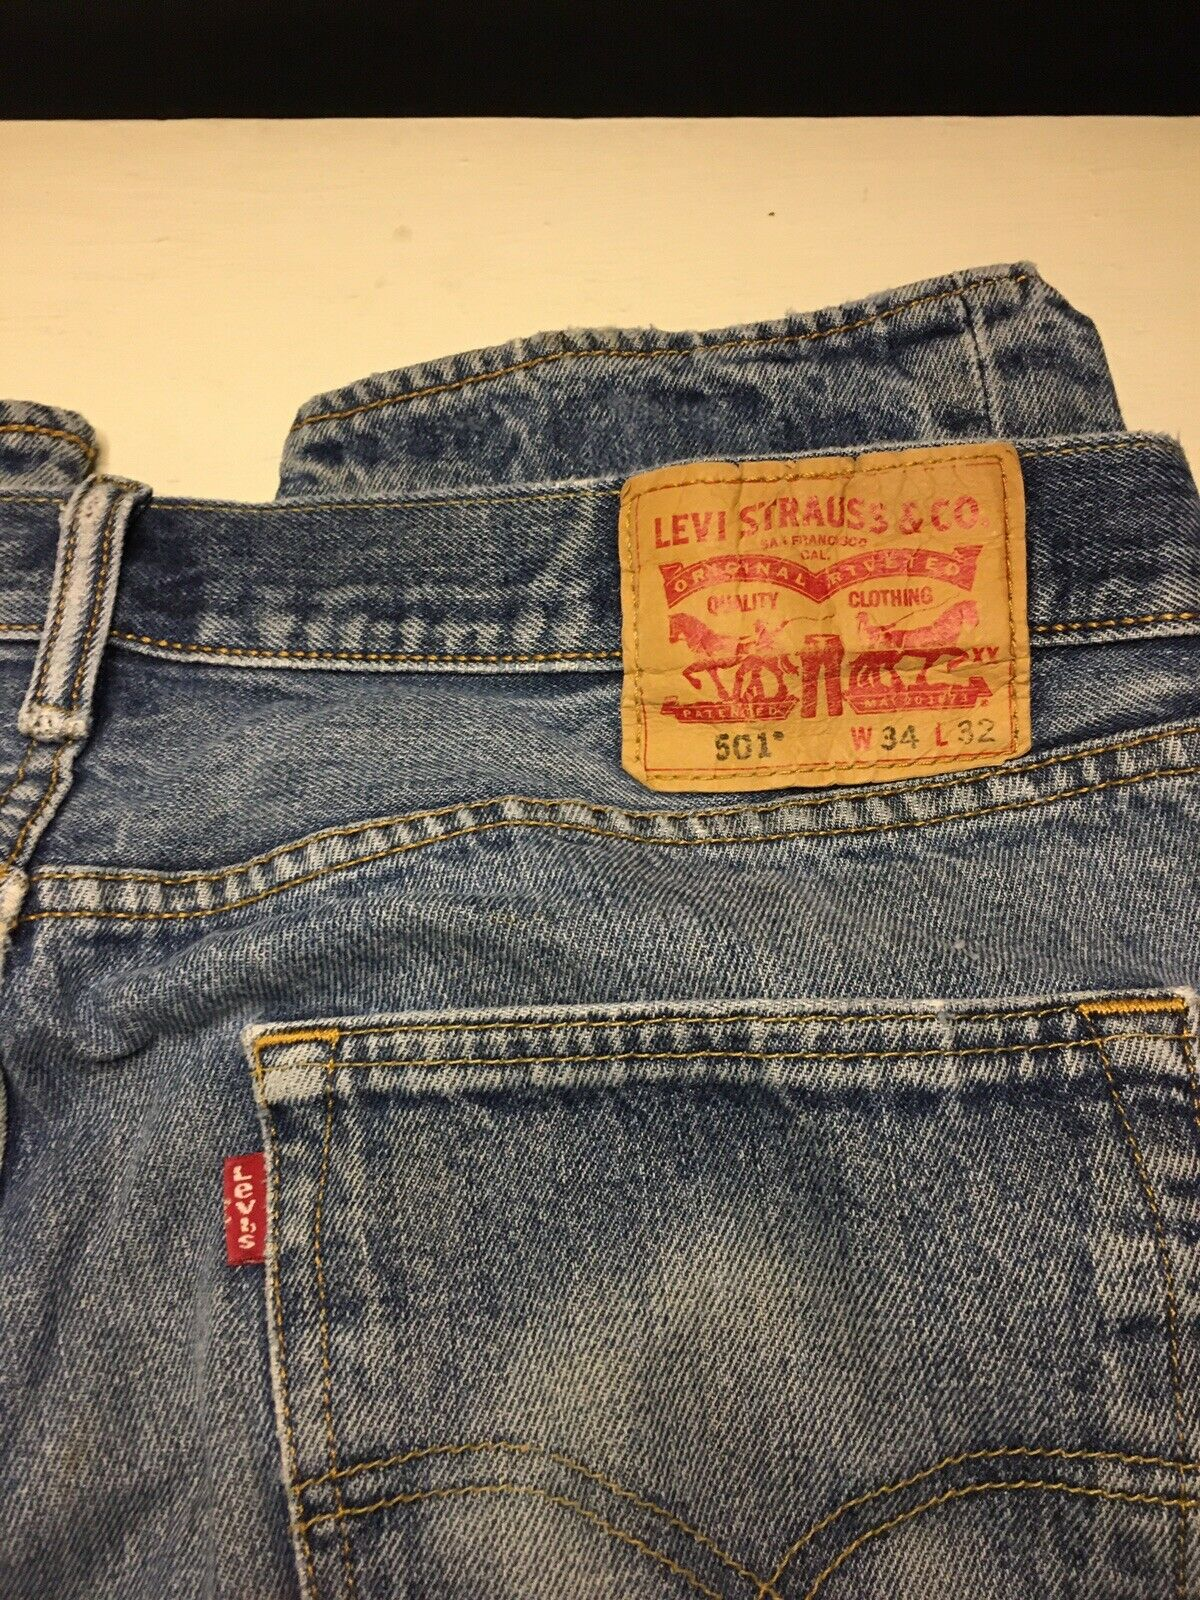 Levis 501 Mens Jeans 34x32 Distressed Work Jeans … - image 8